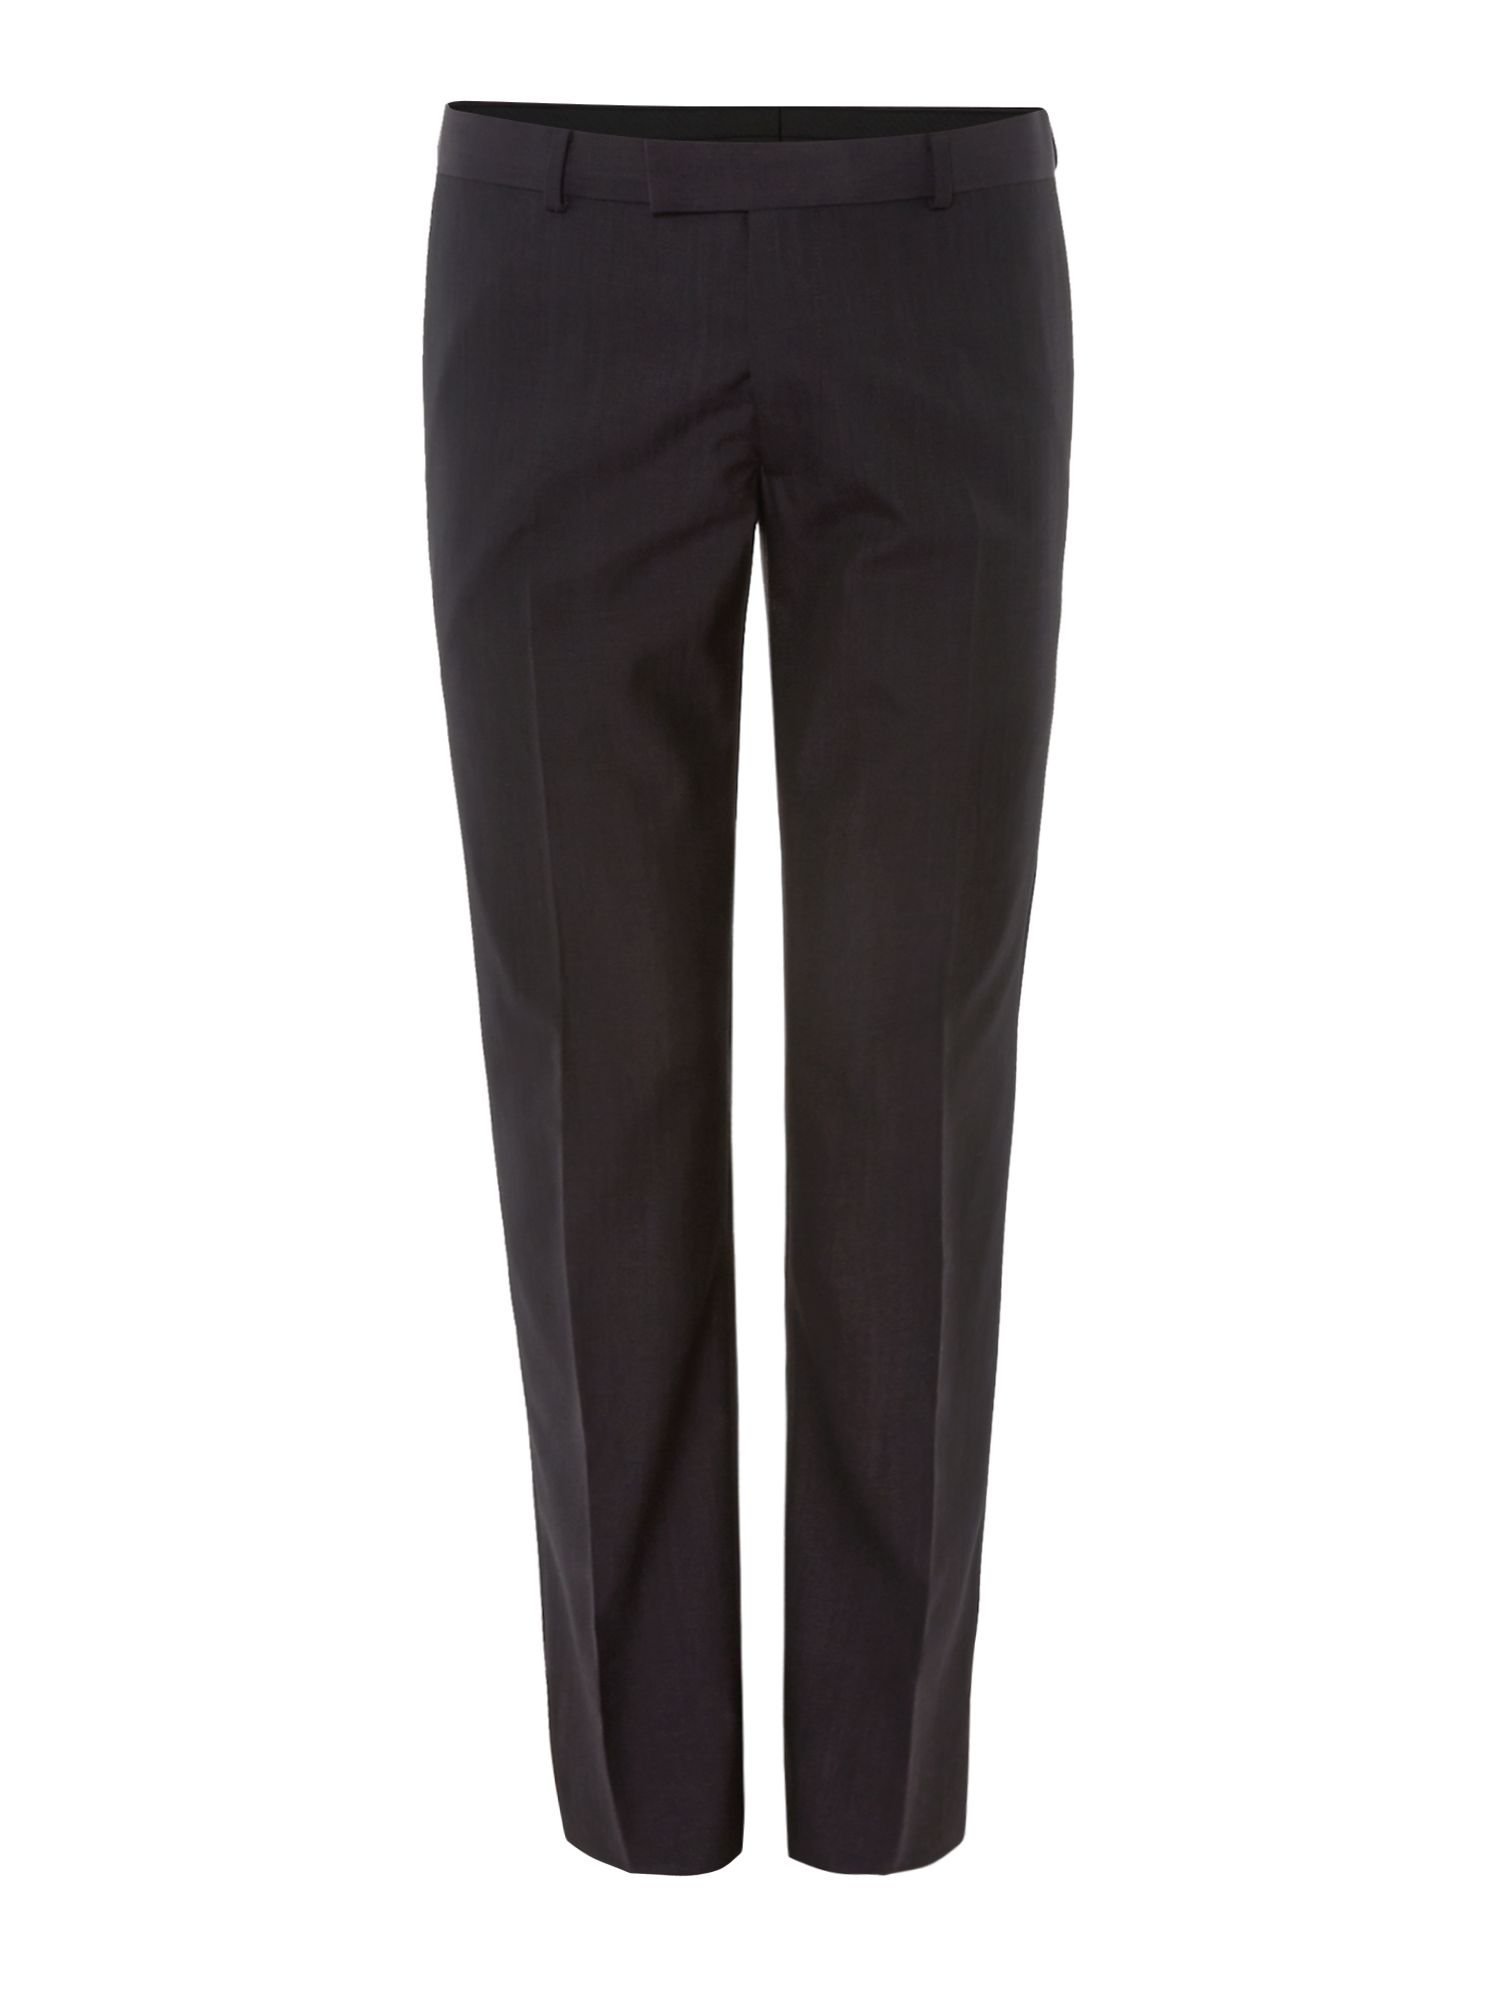 Clarendon slim fit suit trousers